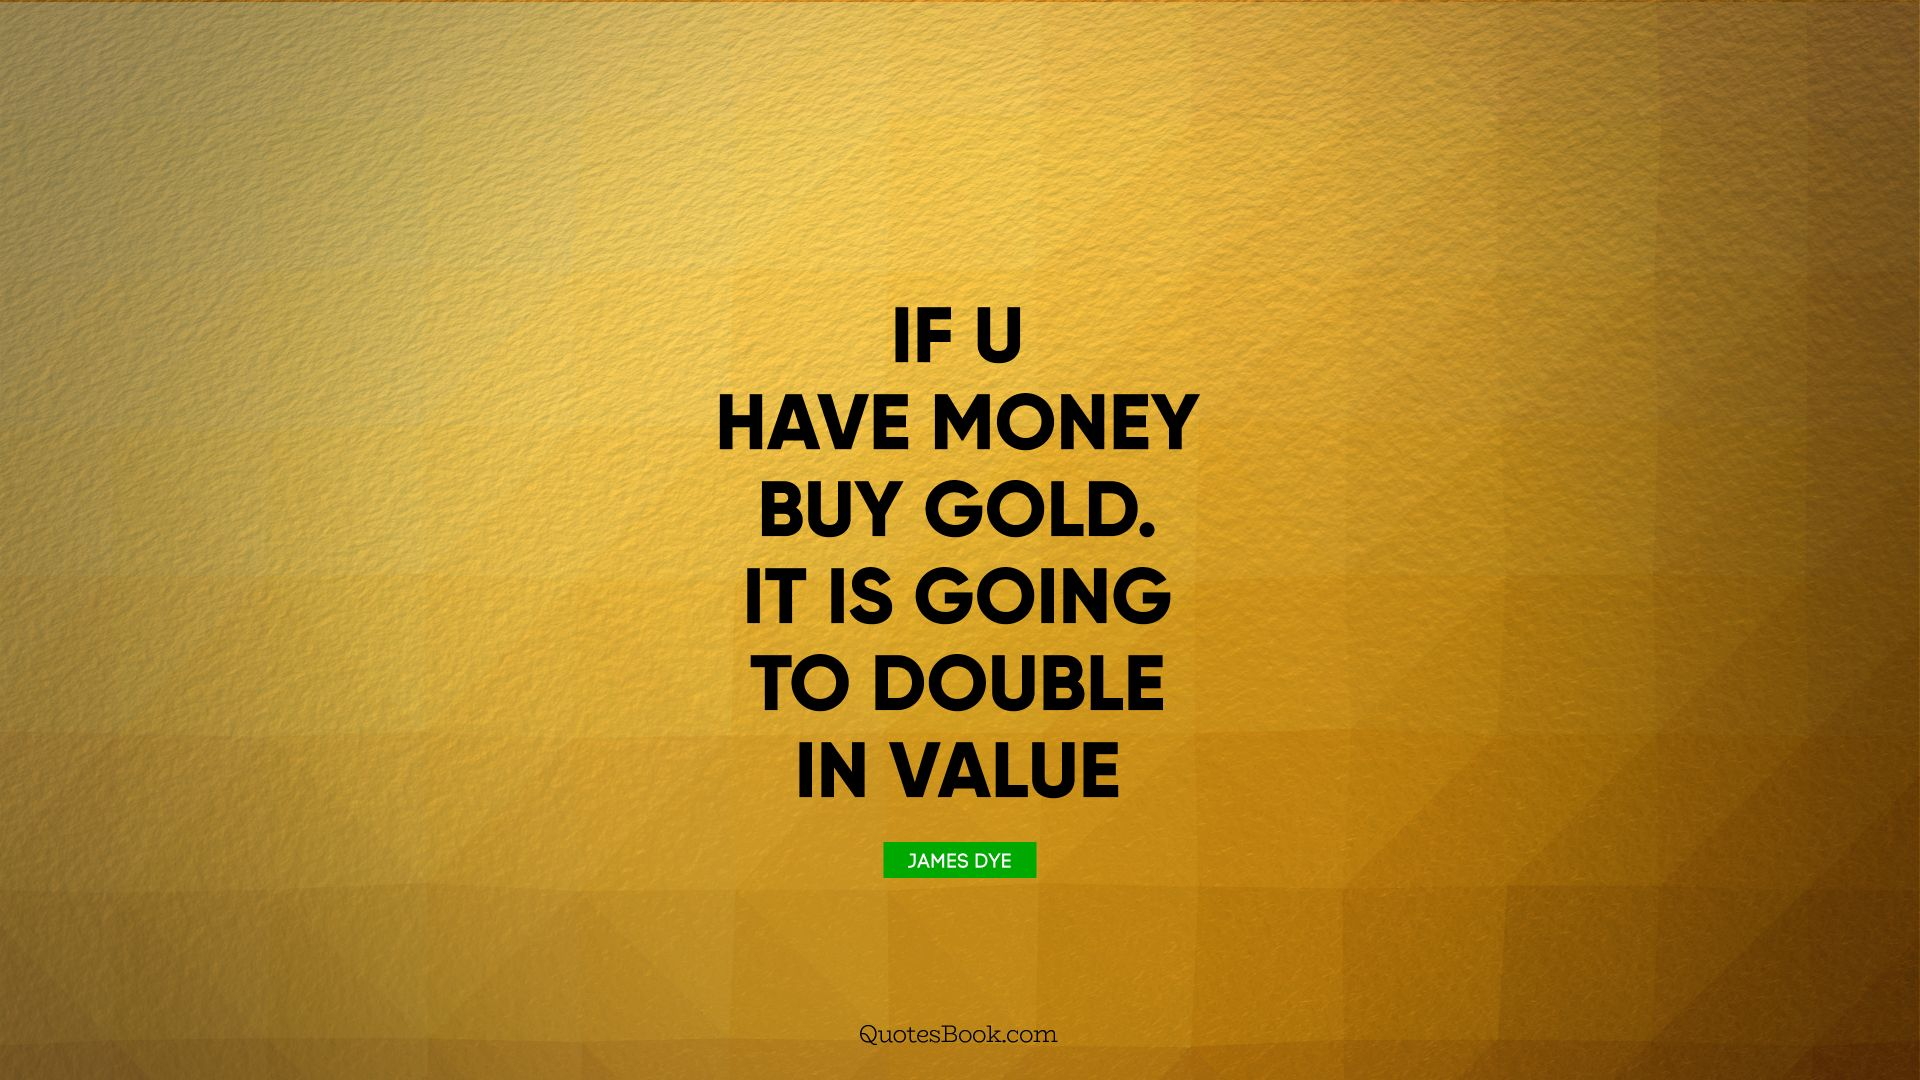 If u have money buy gold. It is going to double in value. - Quote by James Dye